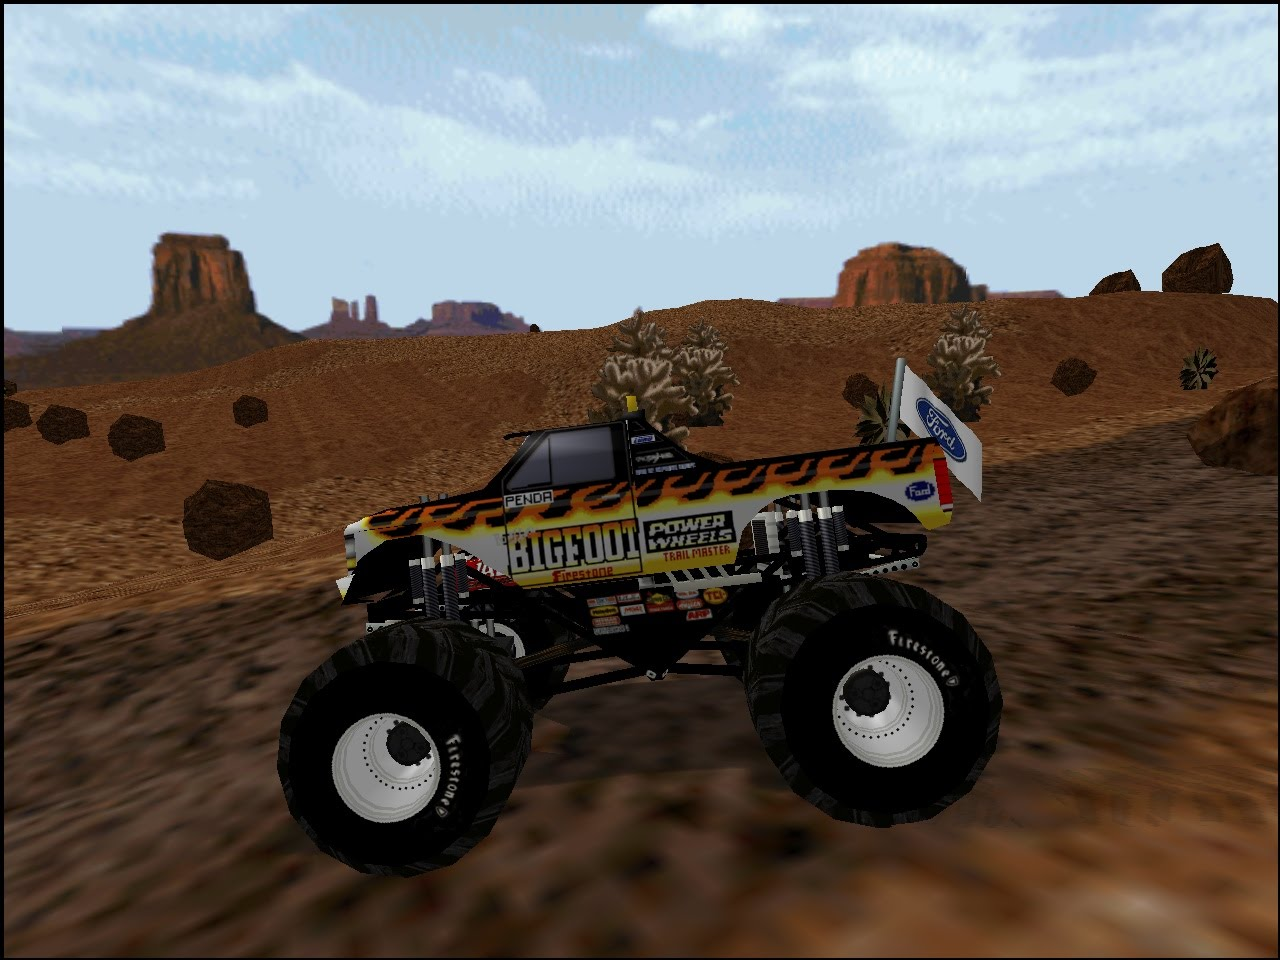 MTM2 com • View topic - Monster Truck Madness 2 at 1280x960